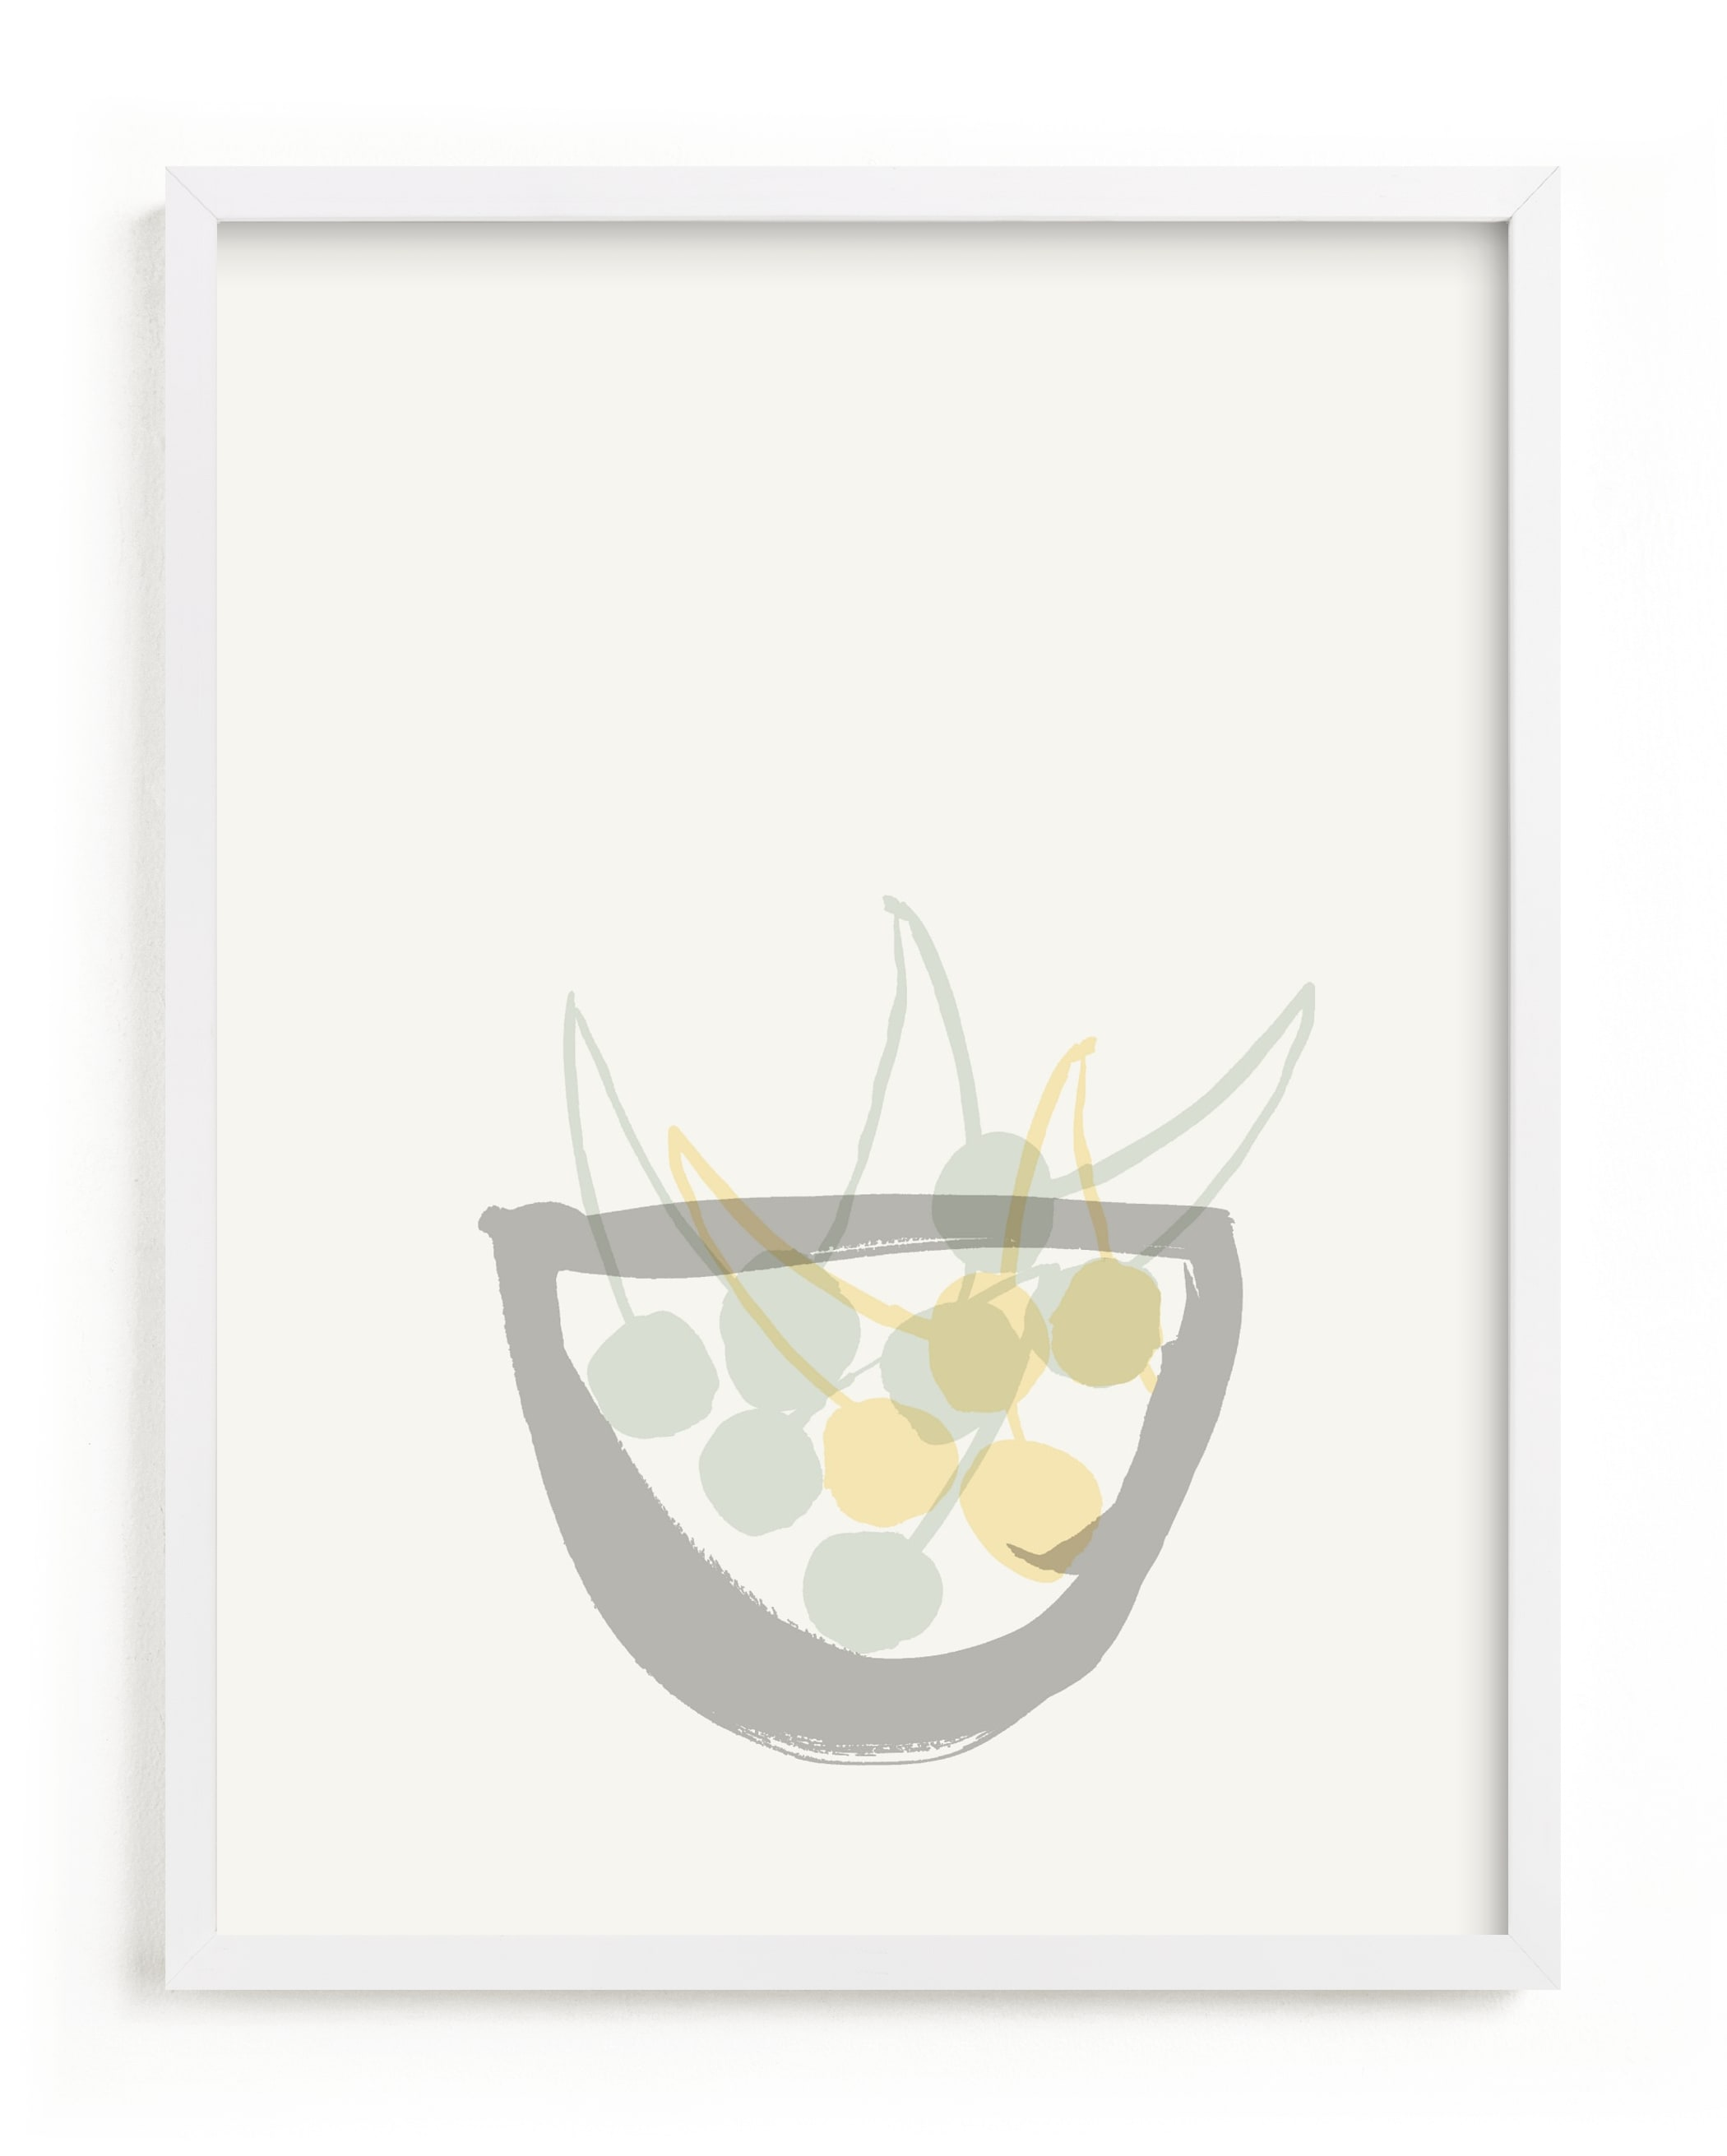 This is a yellow art by Sonya Percival called Life is a bowl of cherries.